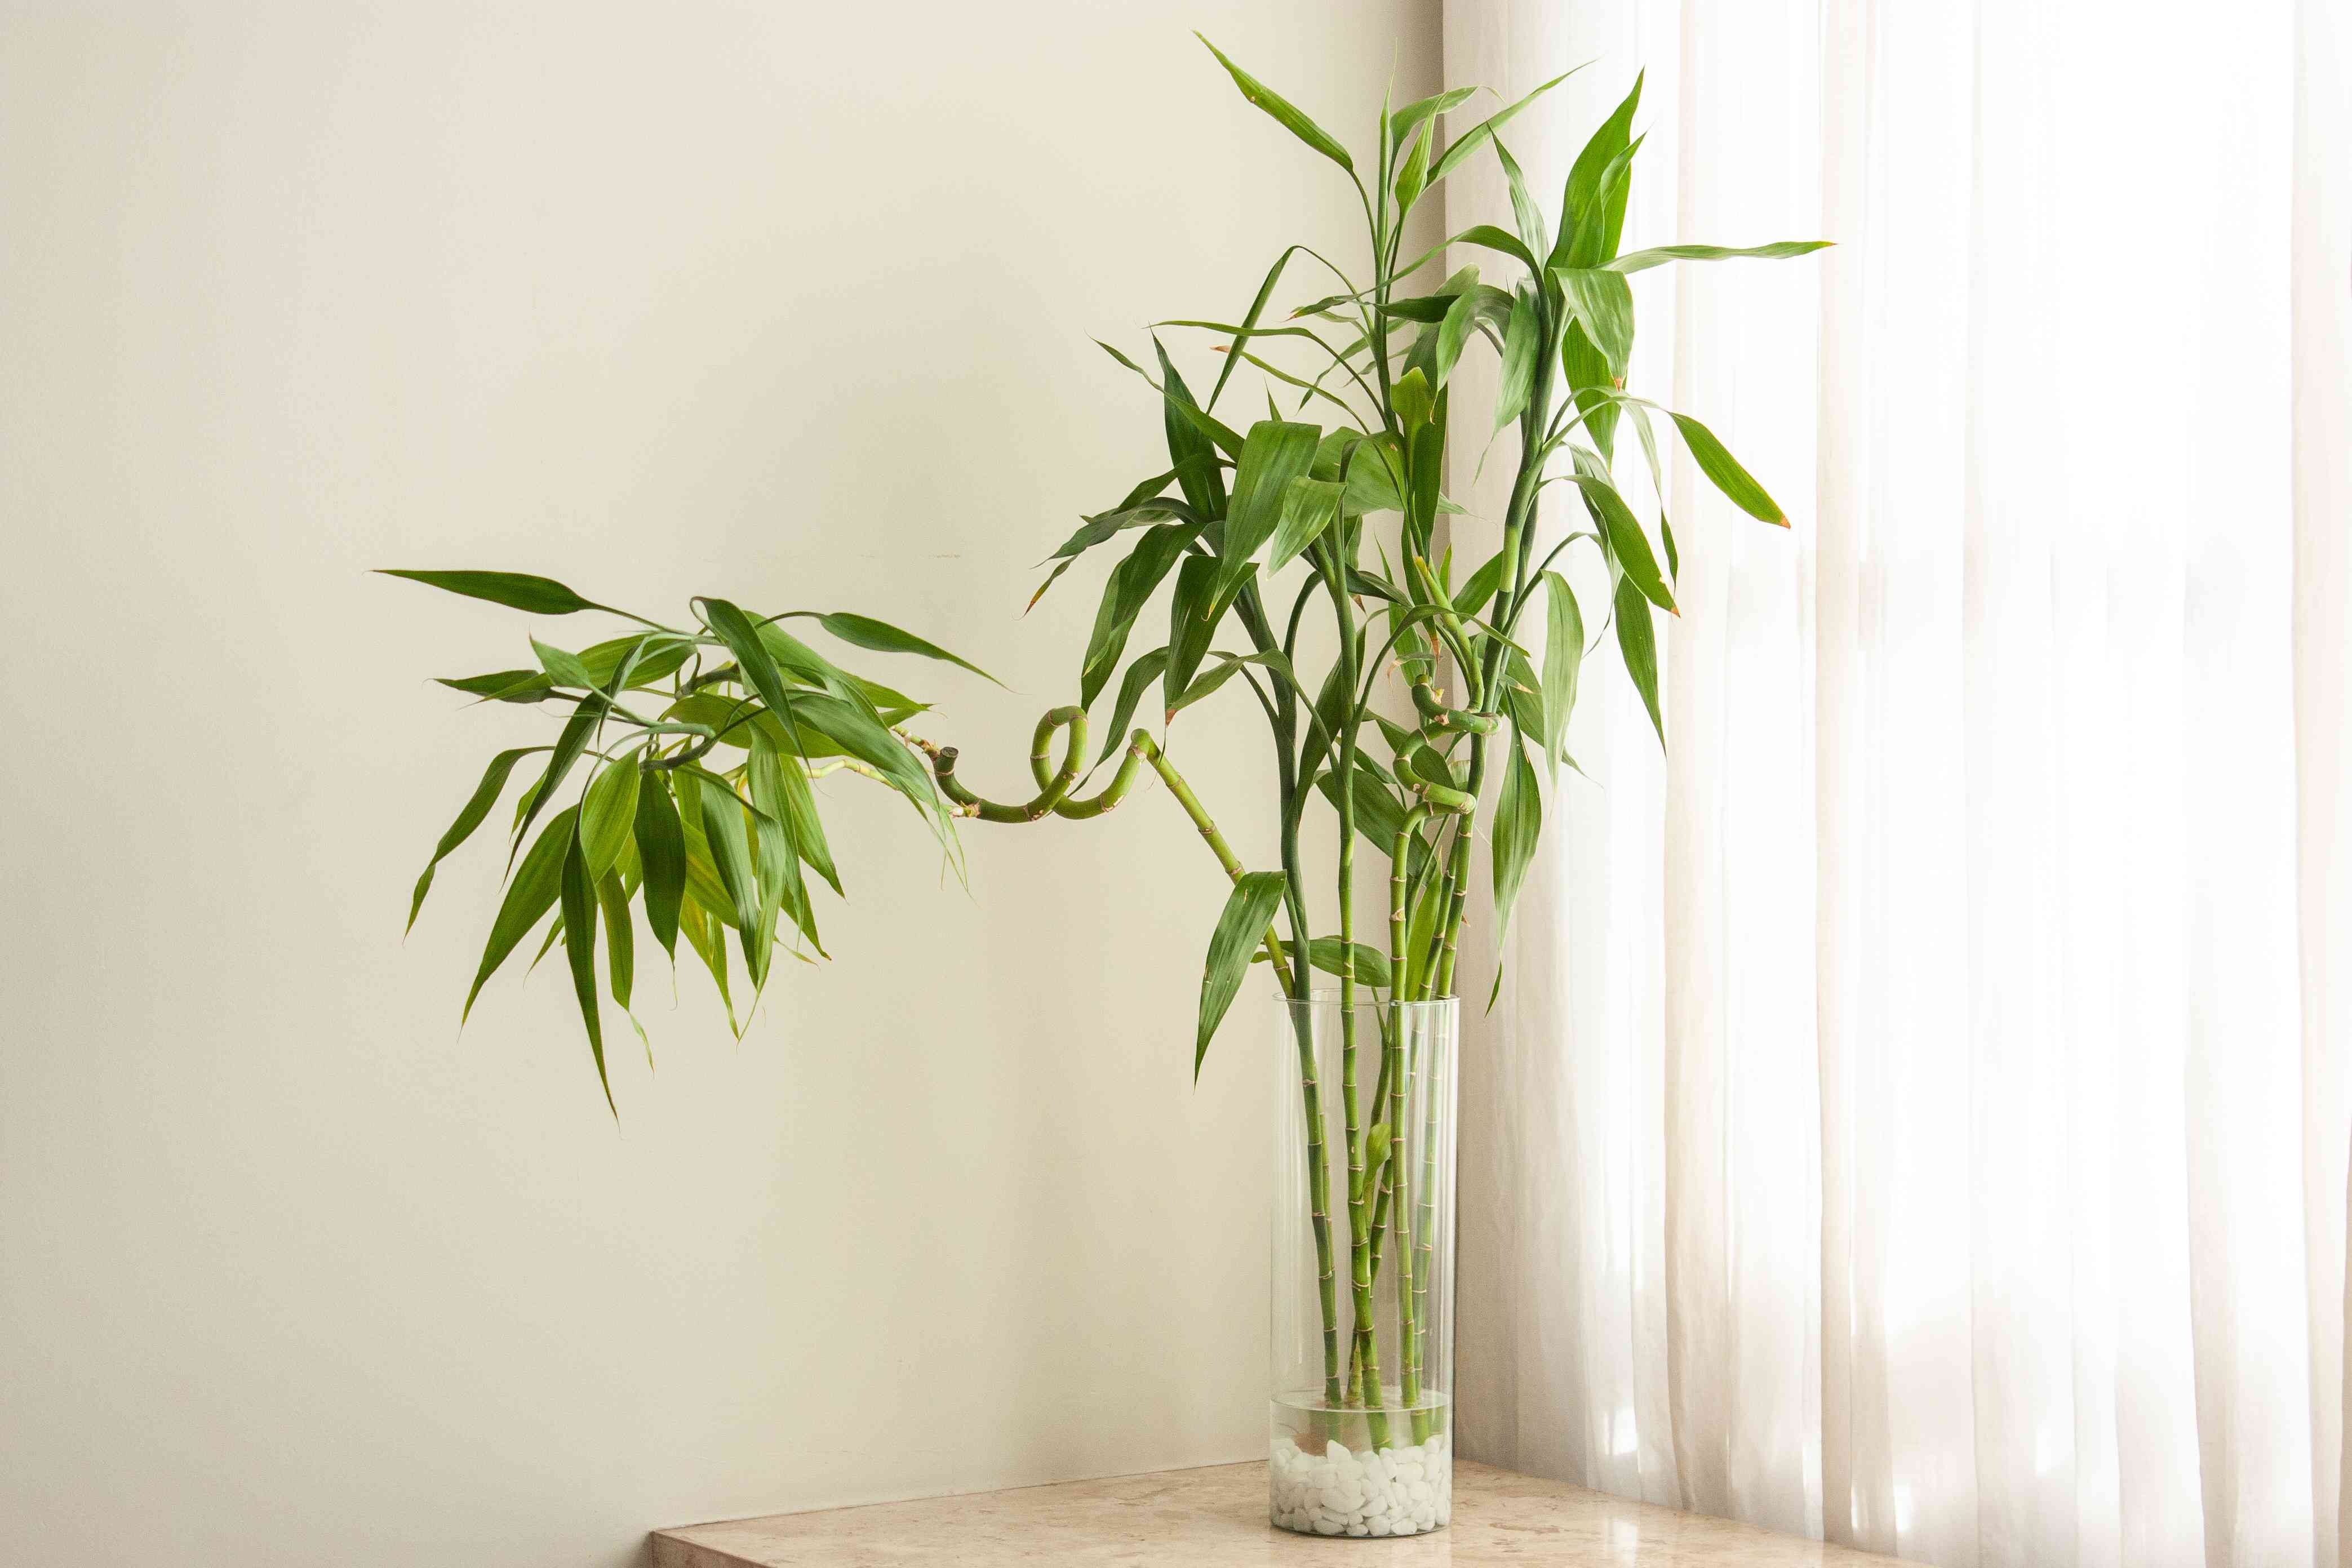 lucky bamboo in a vase tall enough to support its stalks